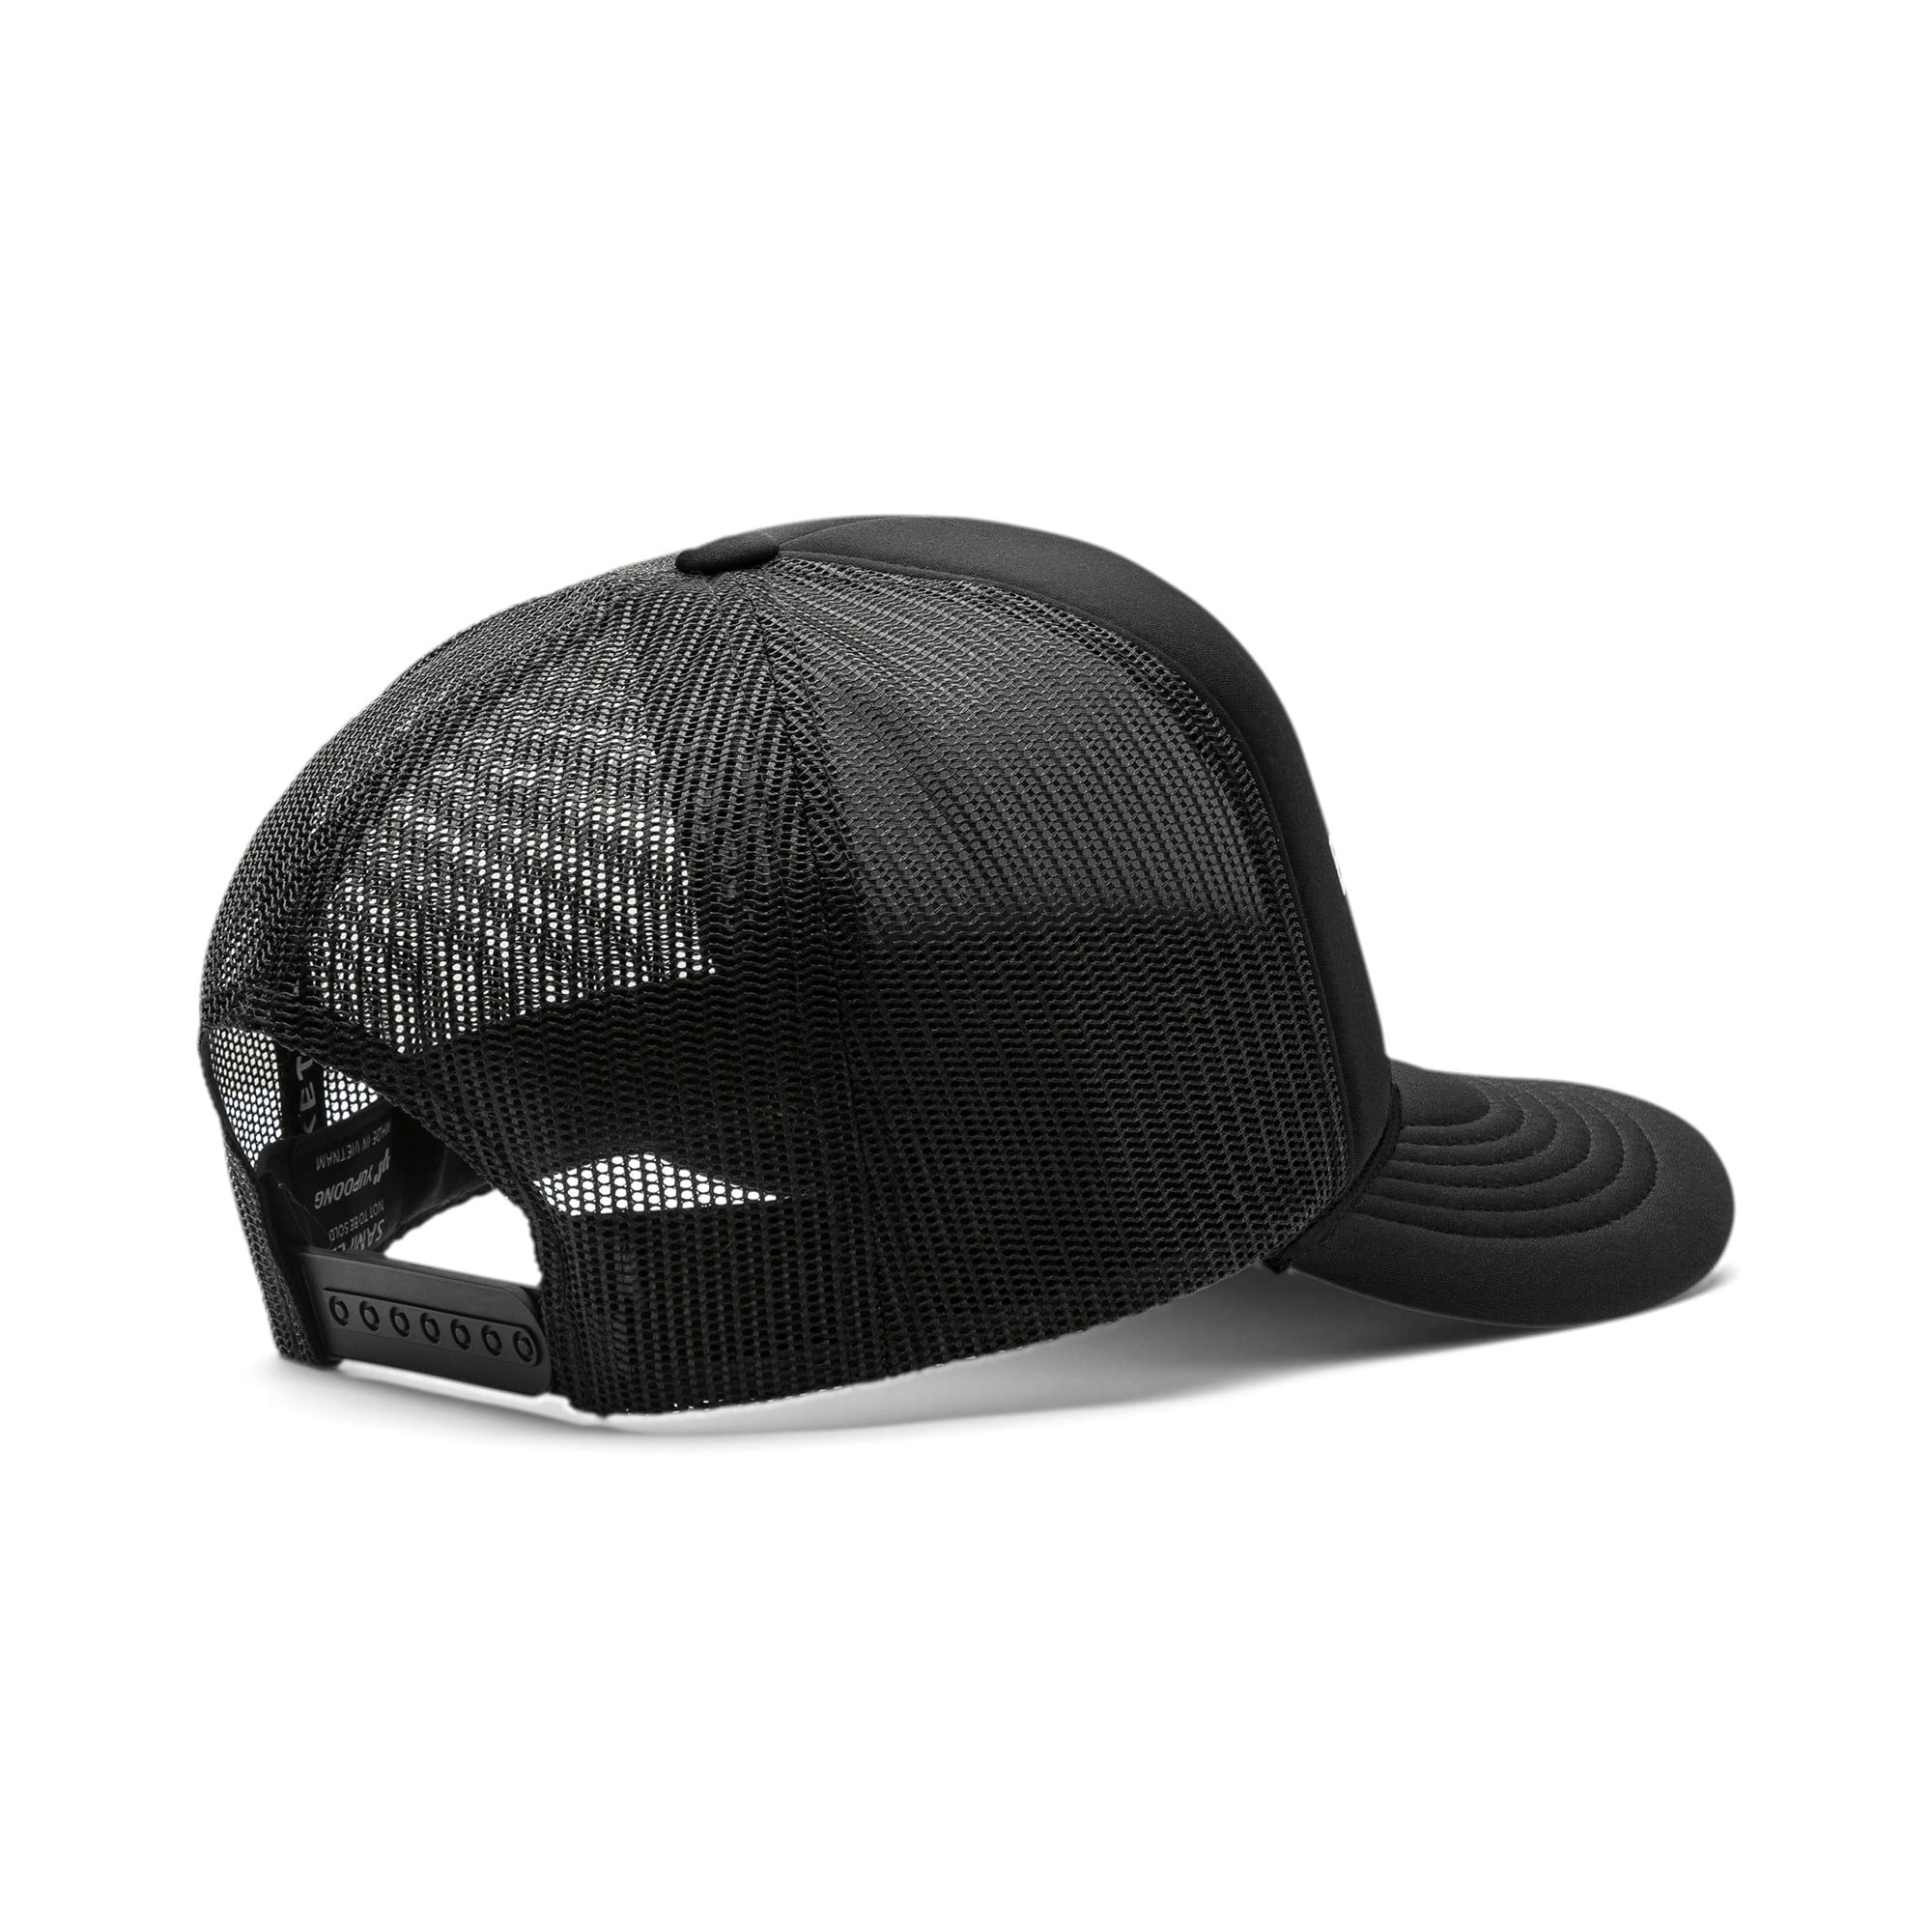 Thumbnail 2 of PUMA Basketball Flat Brim Cap, Puma Black, medium